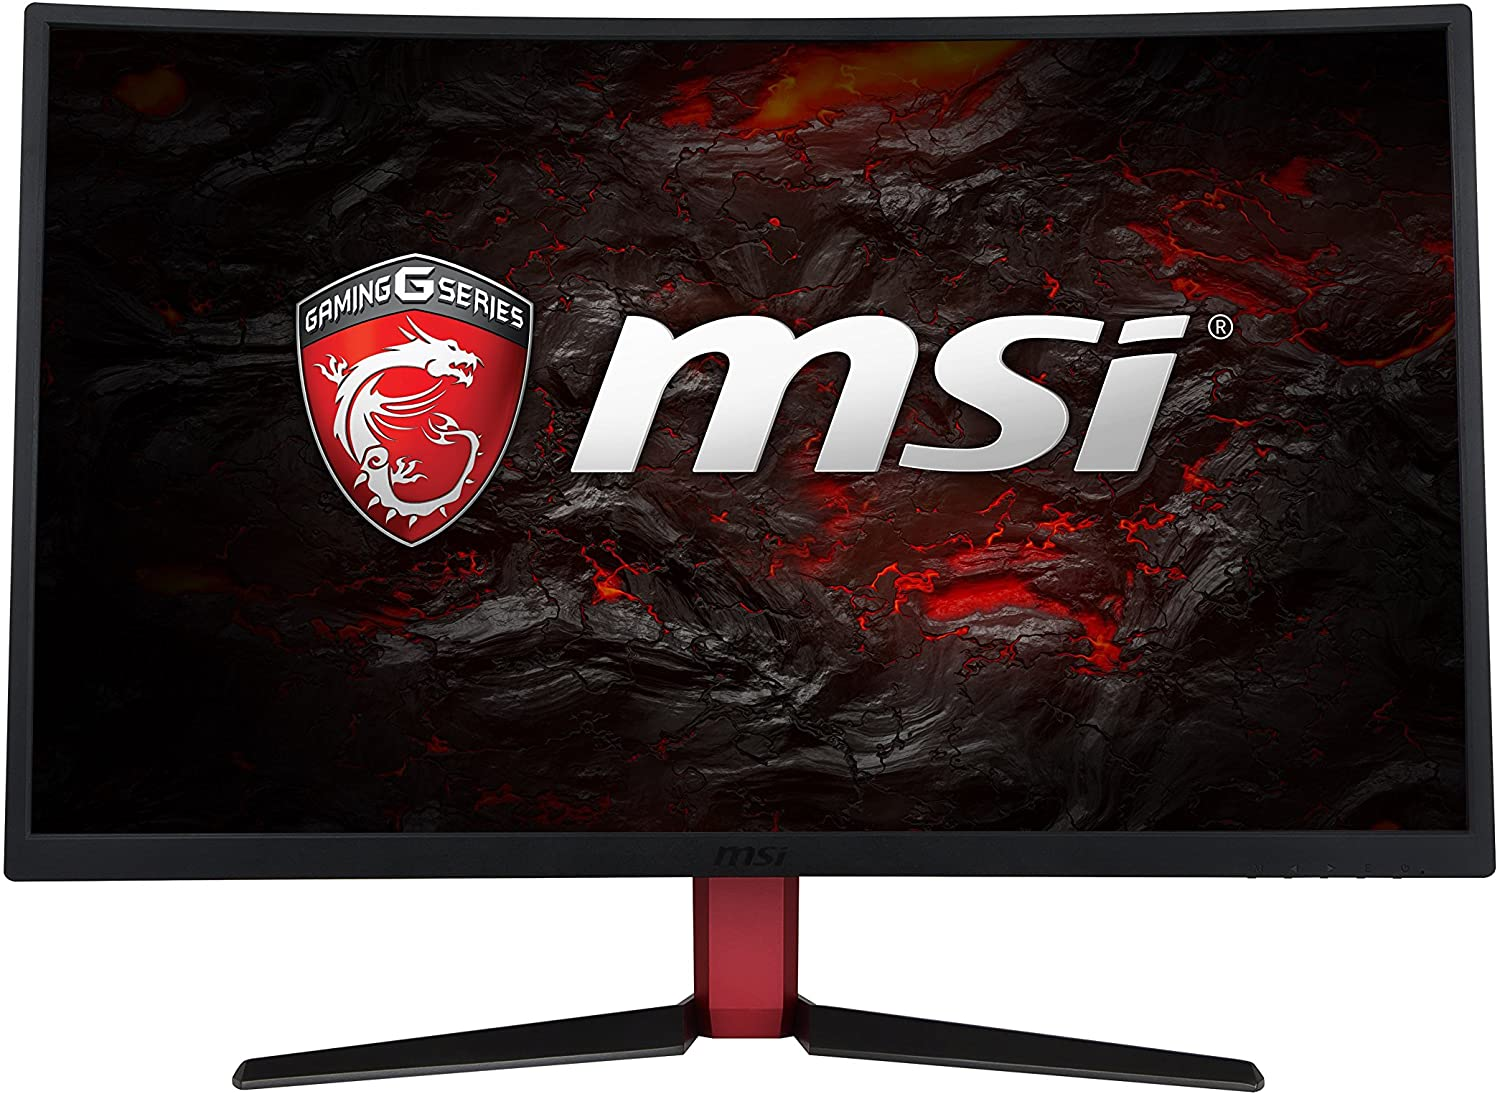 MSI Gaming Monitor 27